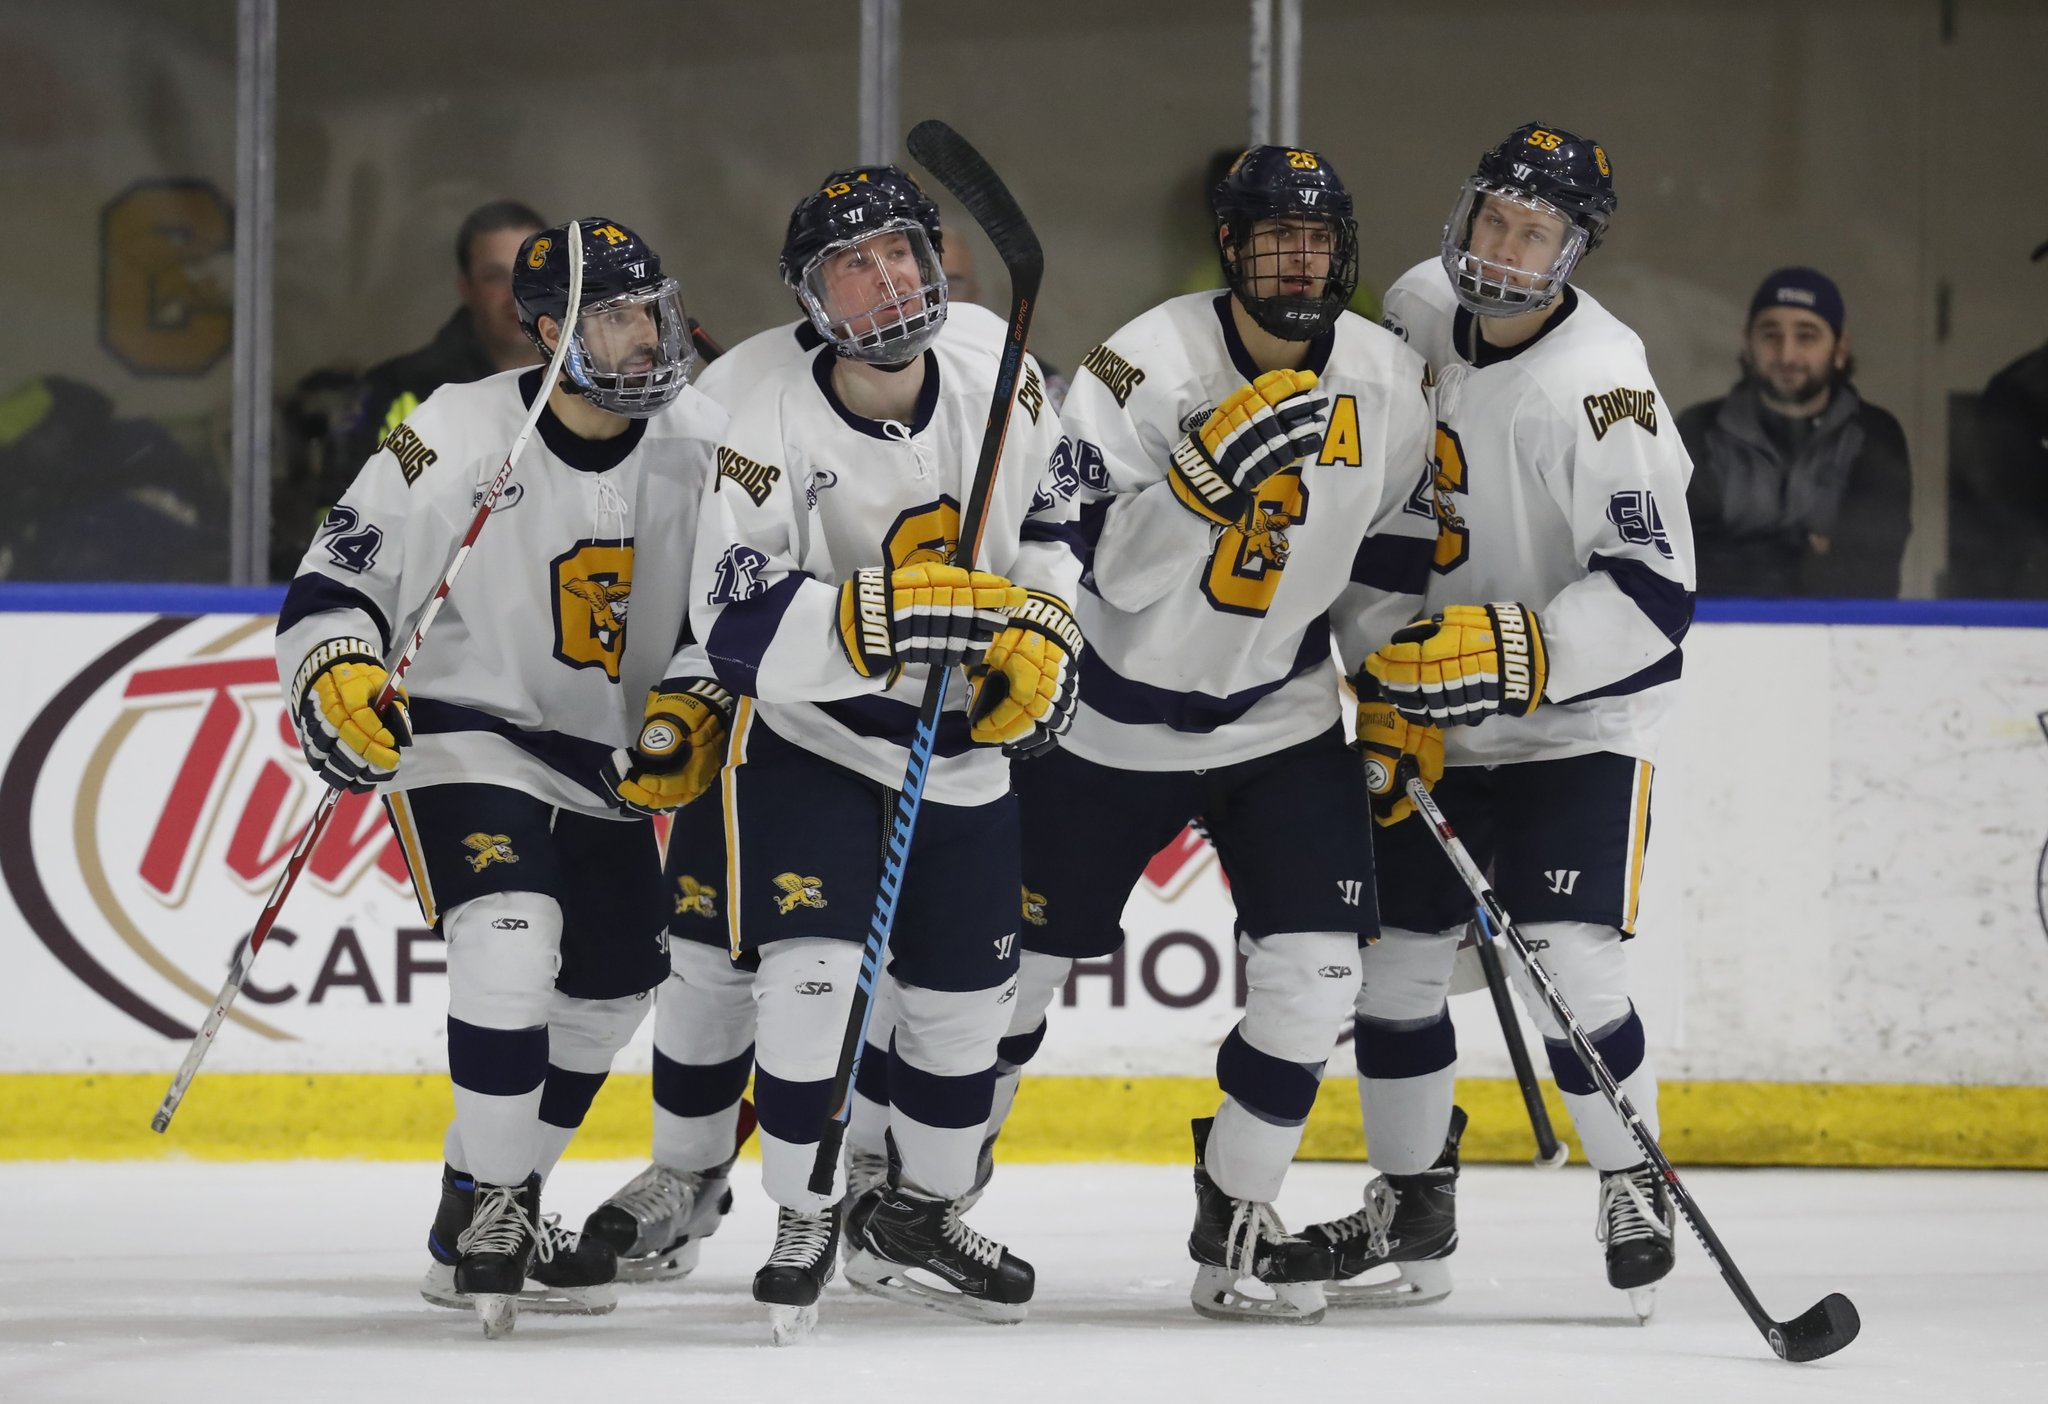 Canisius was picked fifth in the preseason Atlantic Hockey coaches poll. (Harry Scull Jr./Buffalo News)